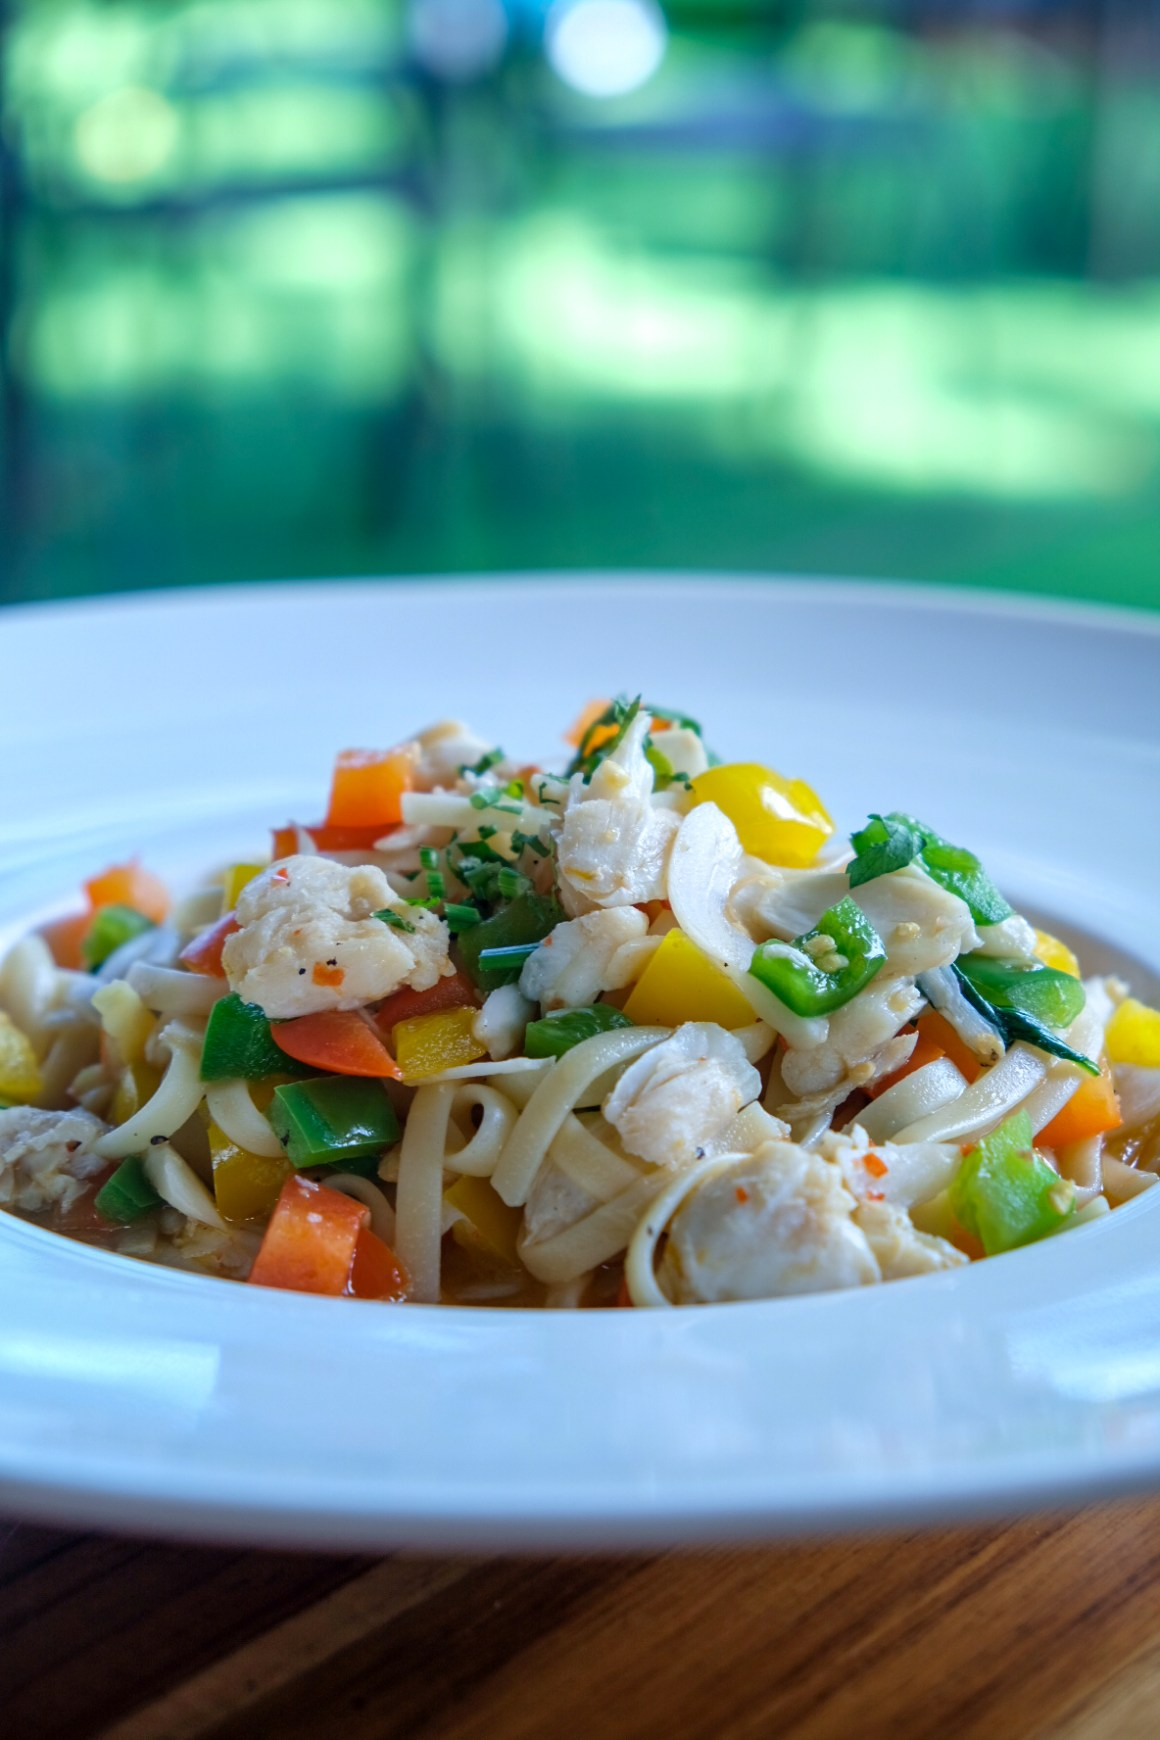 RedDot Brewhouse @ Dempsey, Dog-friendly - RedDot Spicy Crab Meat Linguine ($22)